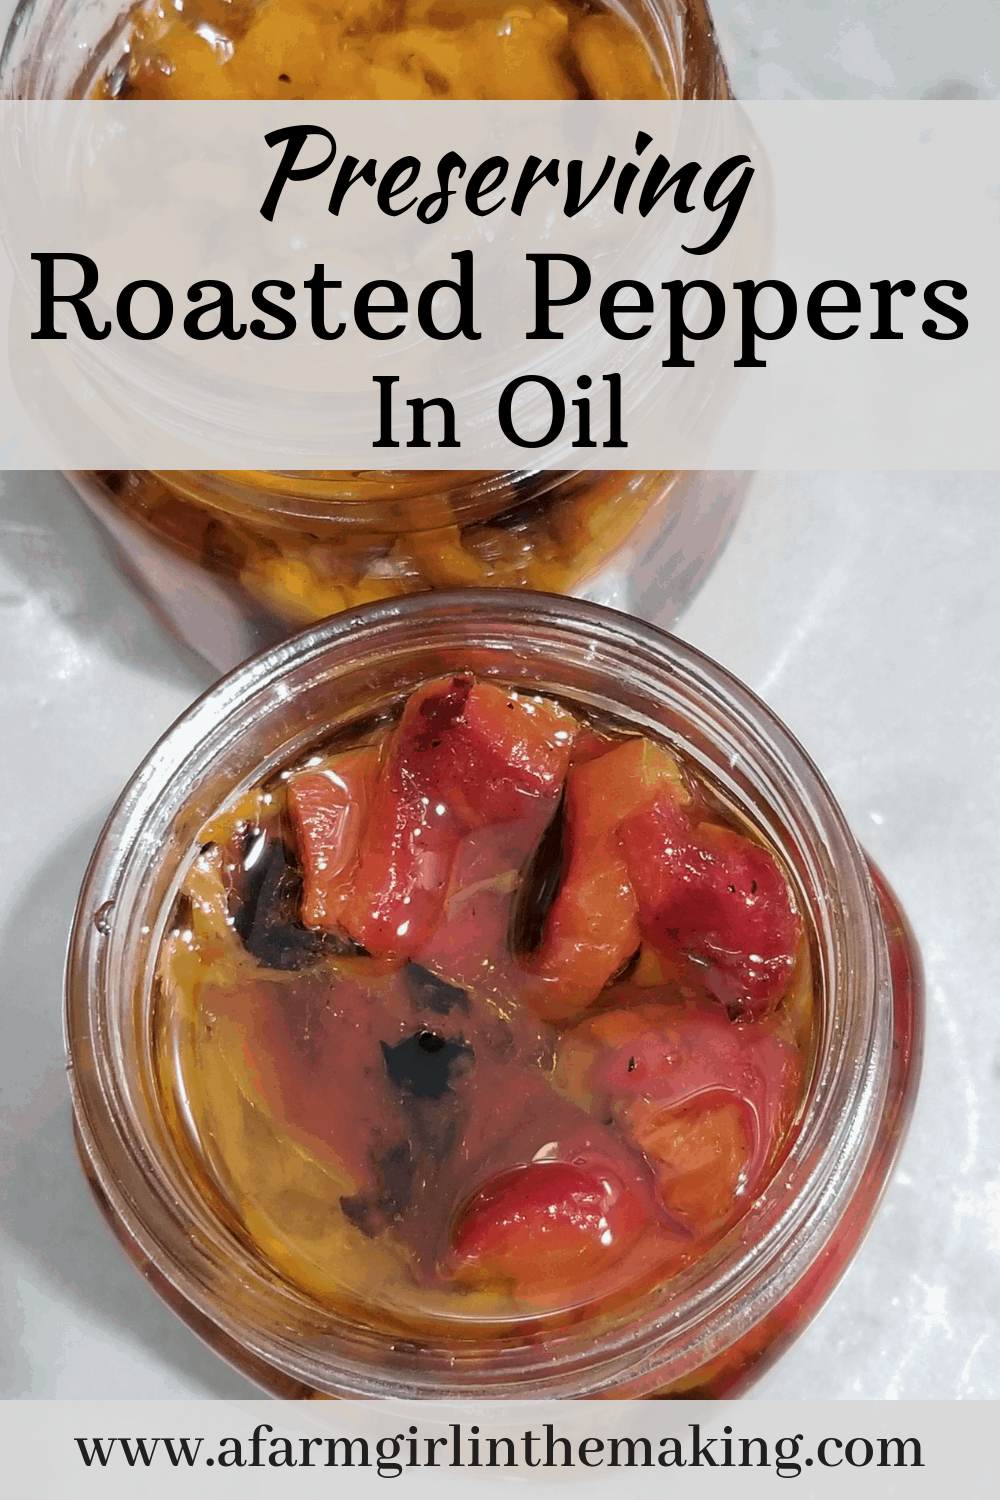 preserving roasted peppers in oil